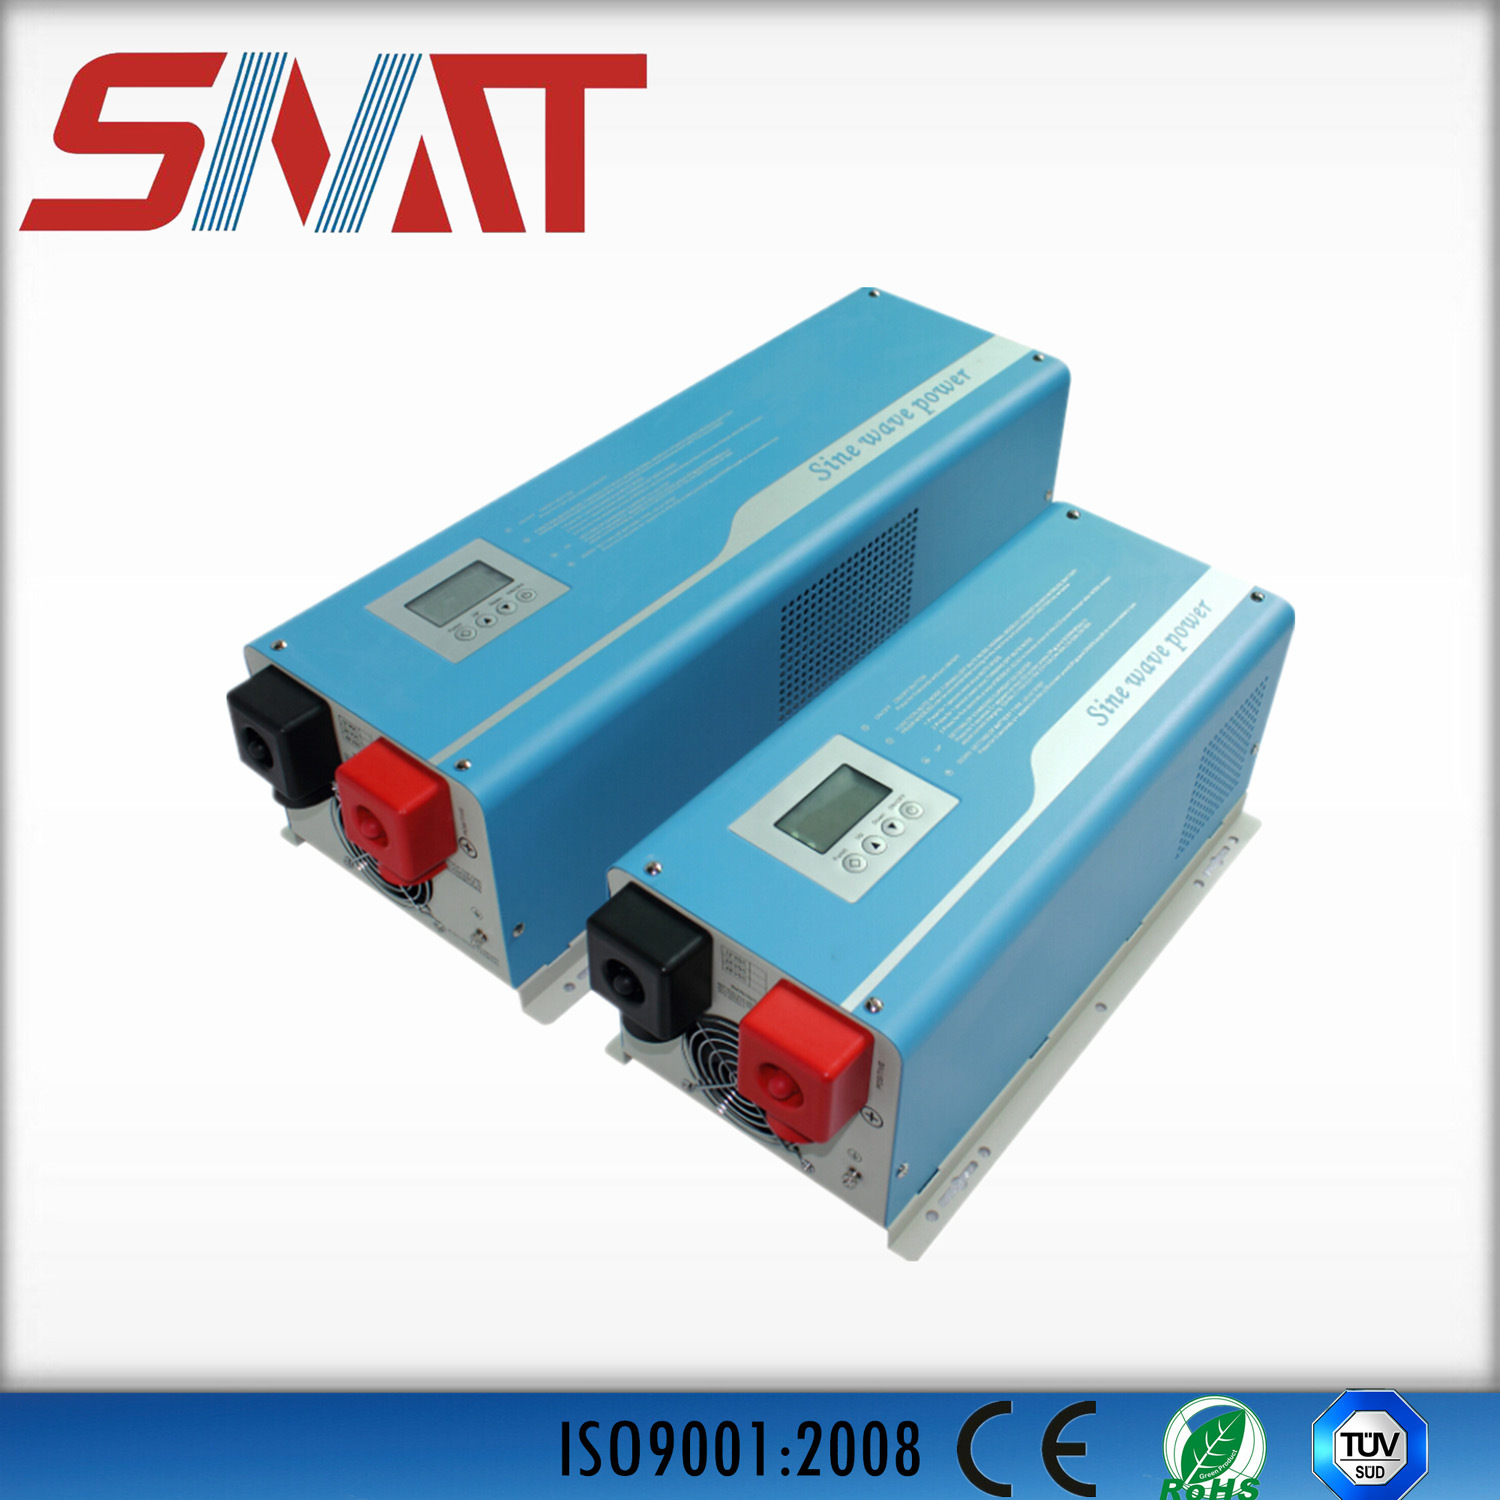 China Foshan Snadi 5000w Dc To Ac Solar Power Supply Pure Sine Wave Inverter On With Digital Lcd